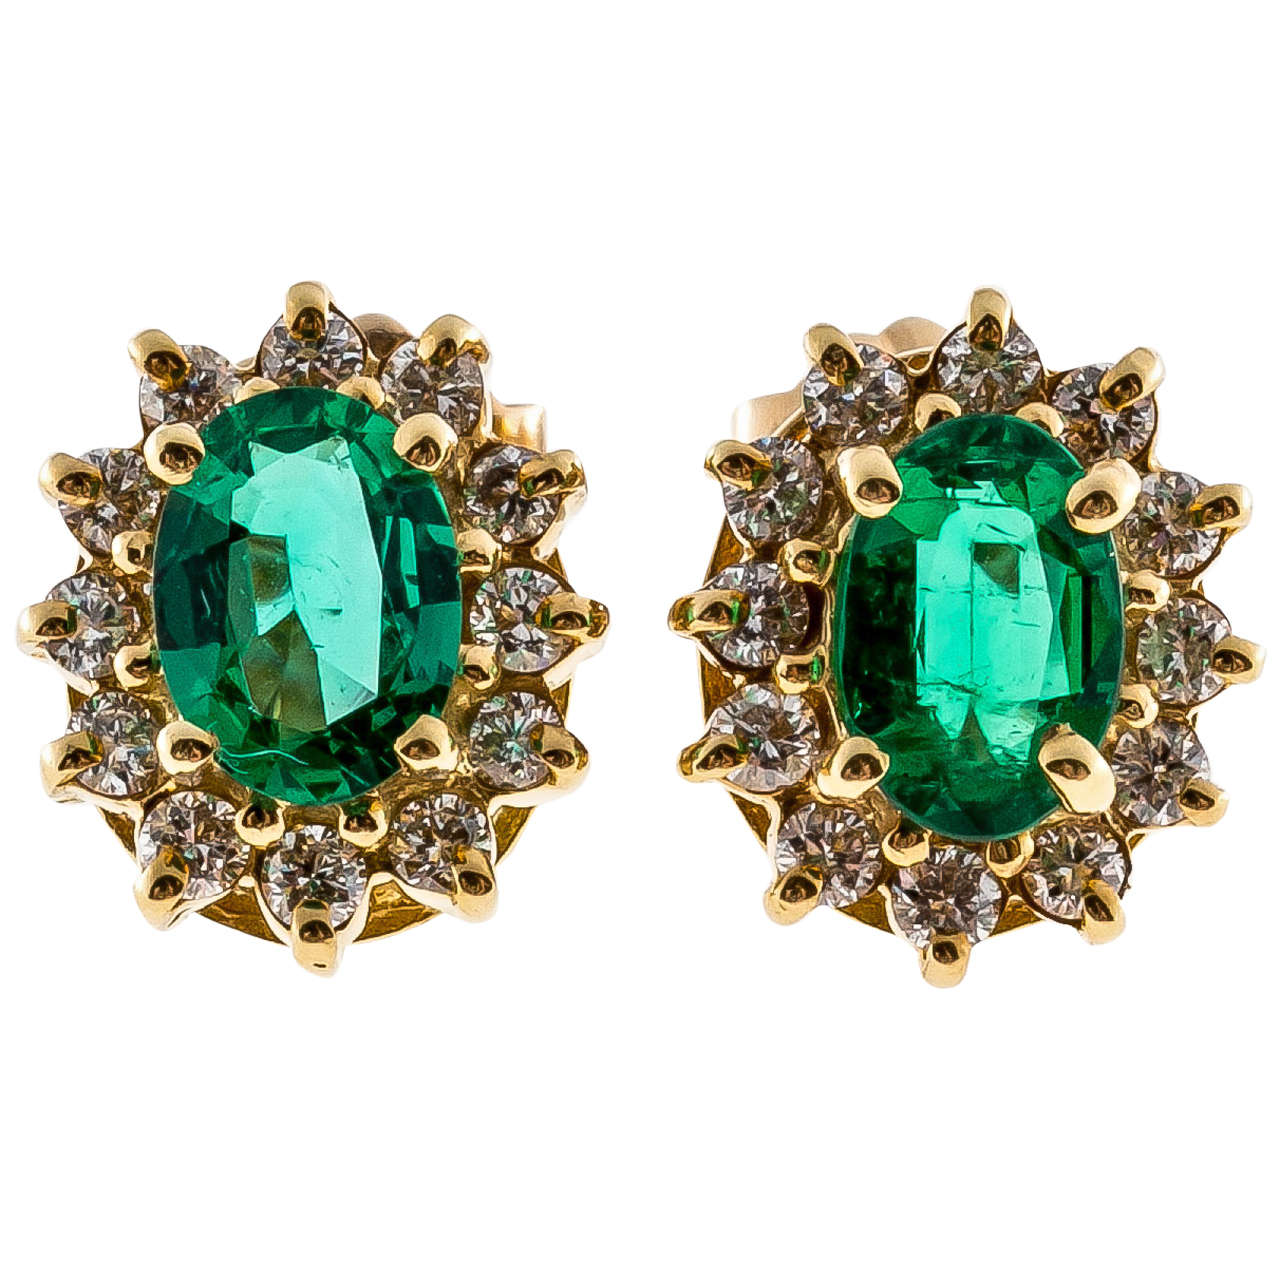 diamond emerald earrings gold jewellers yellow browns green from family cluster stud image oval jewellery